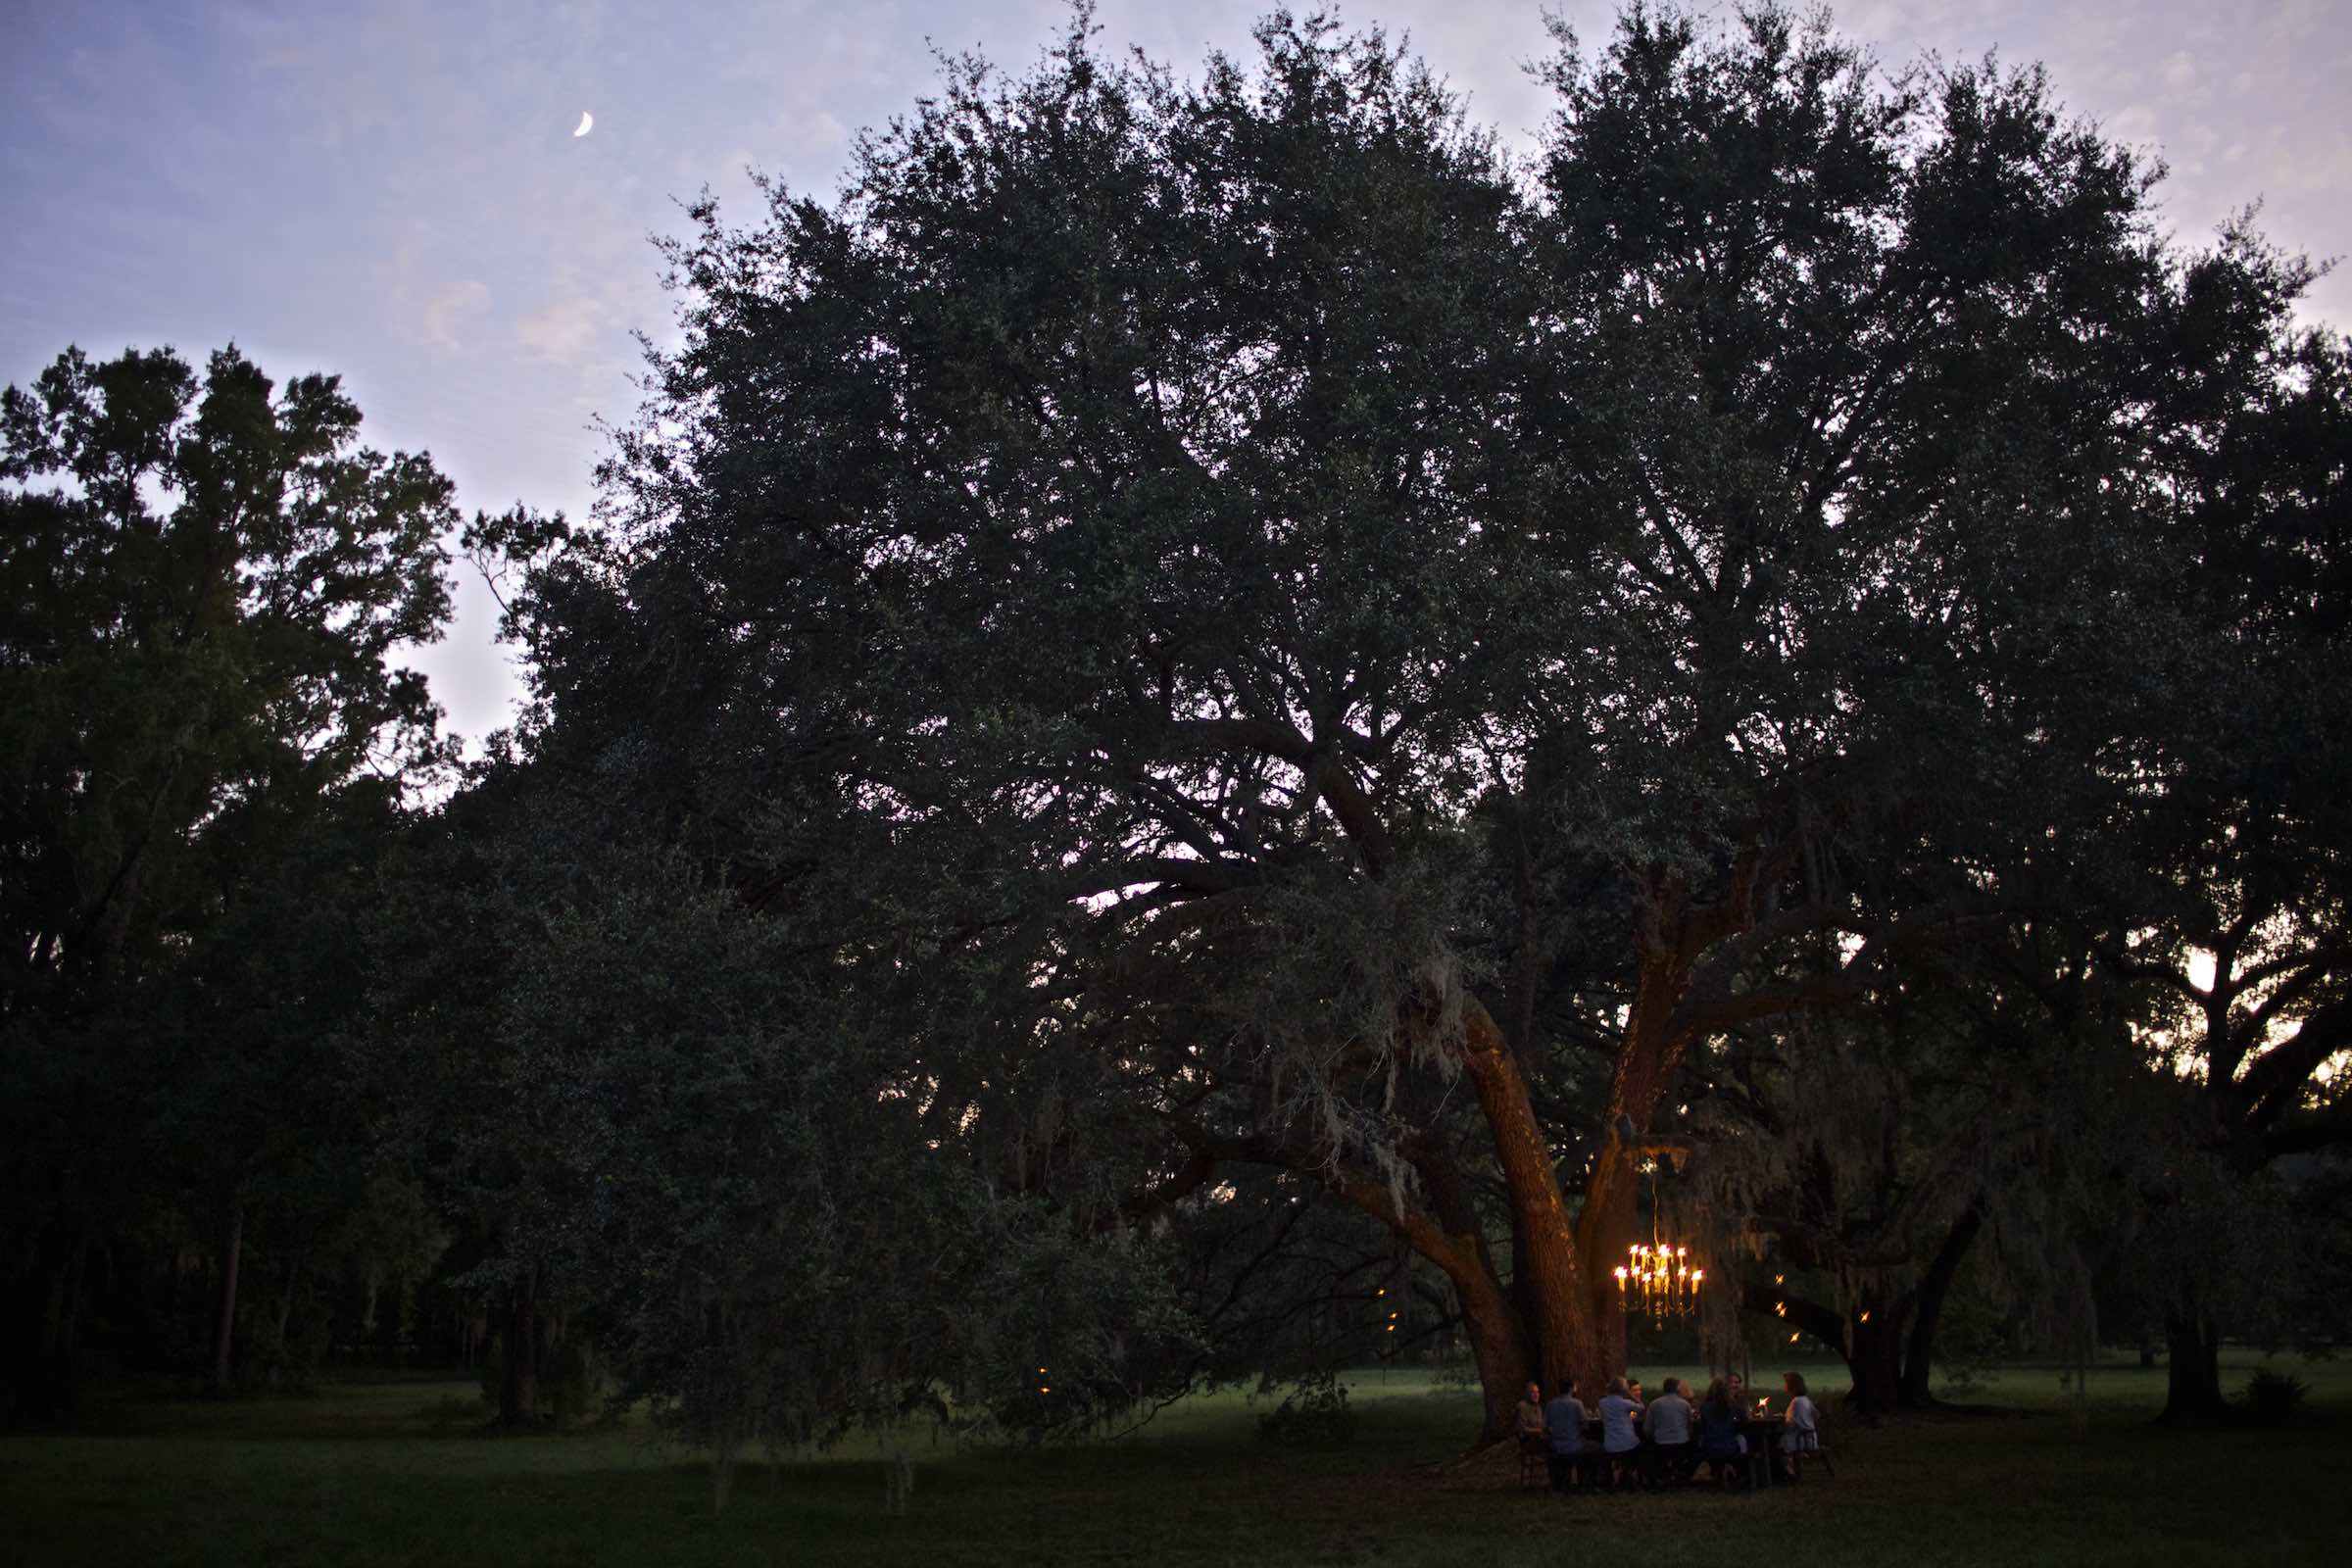 Evening dinner scene lit by a vintage chandelier hanging from a live oak tree.